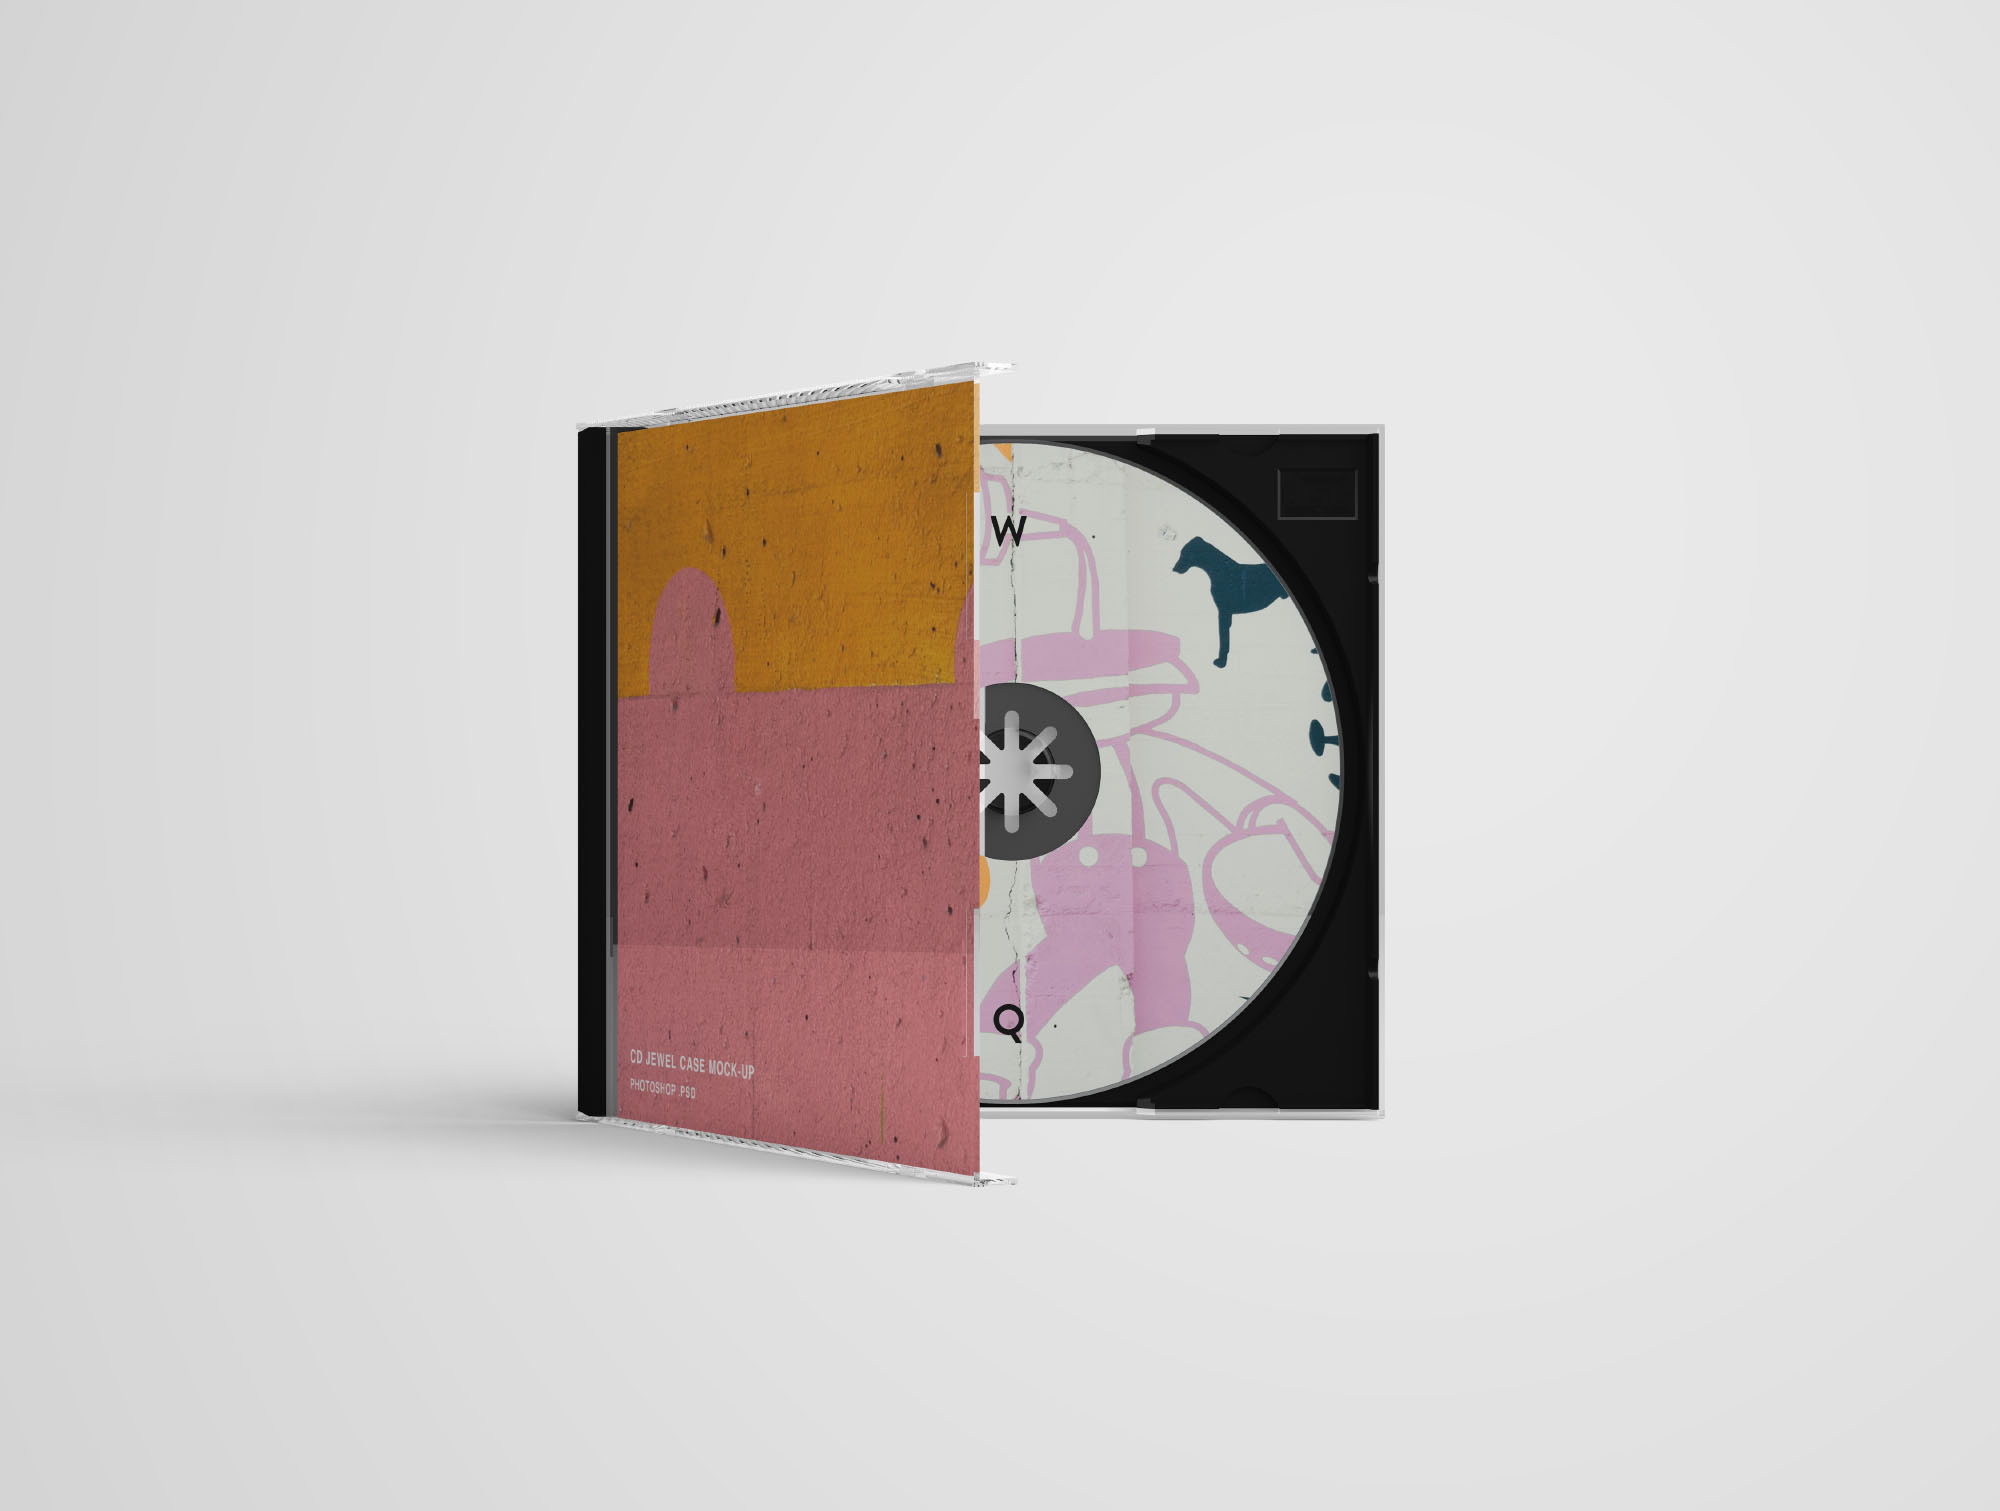 CD Jewel Case Mock-Up